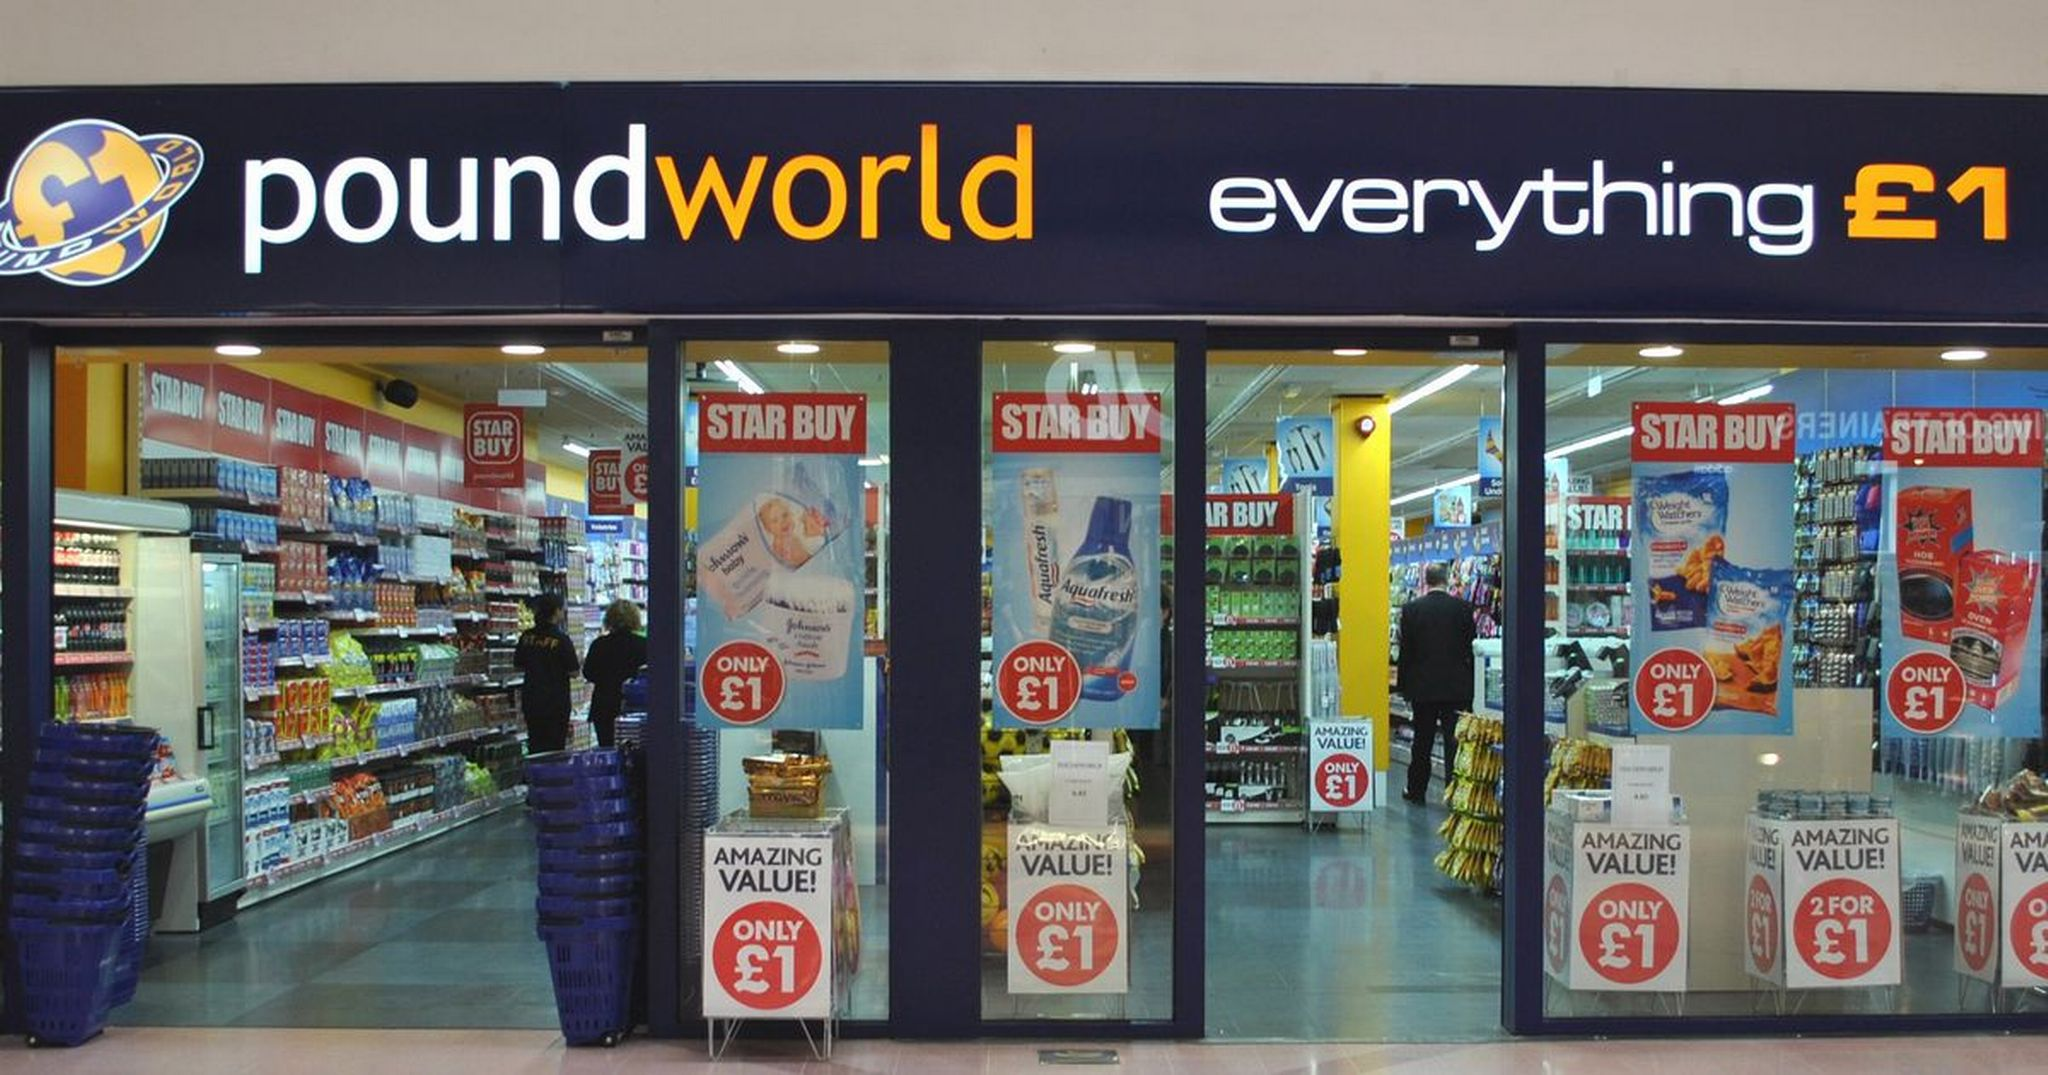 Widmo upadku nad Poundworld